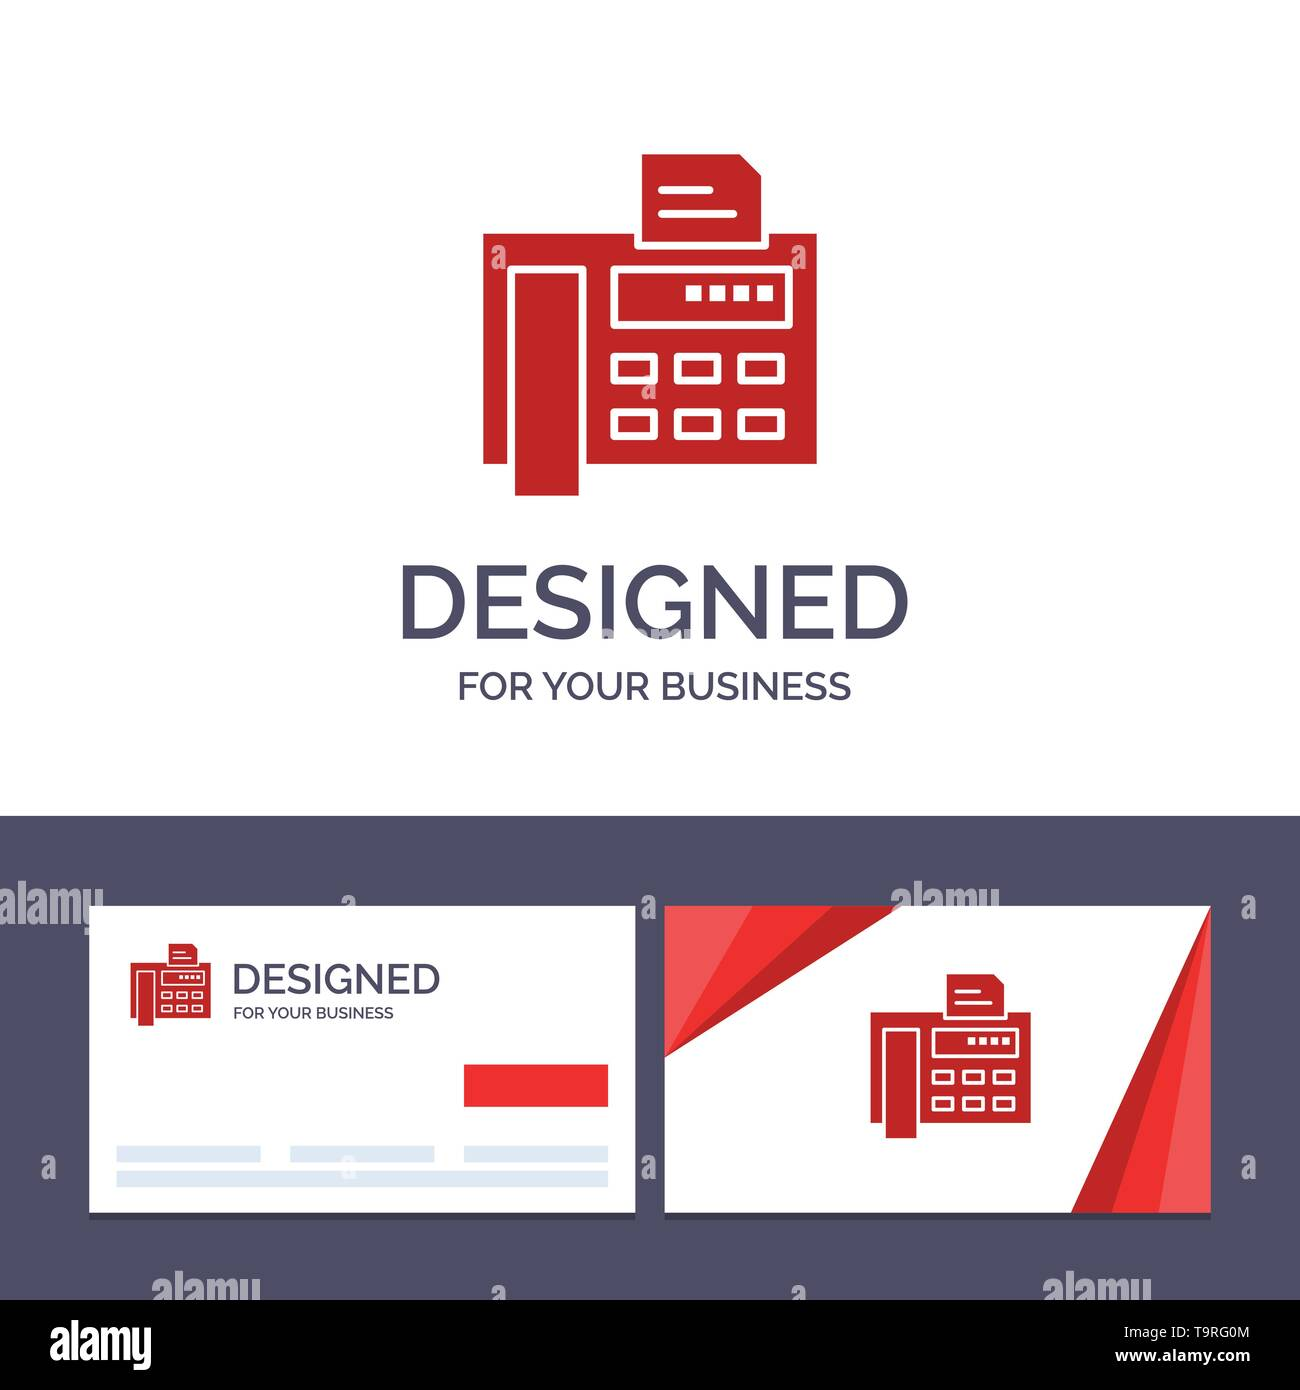 creative business card and logo template fax phone typewriter fax machine vector illustration stock vector image art alamy alamy